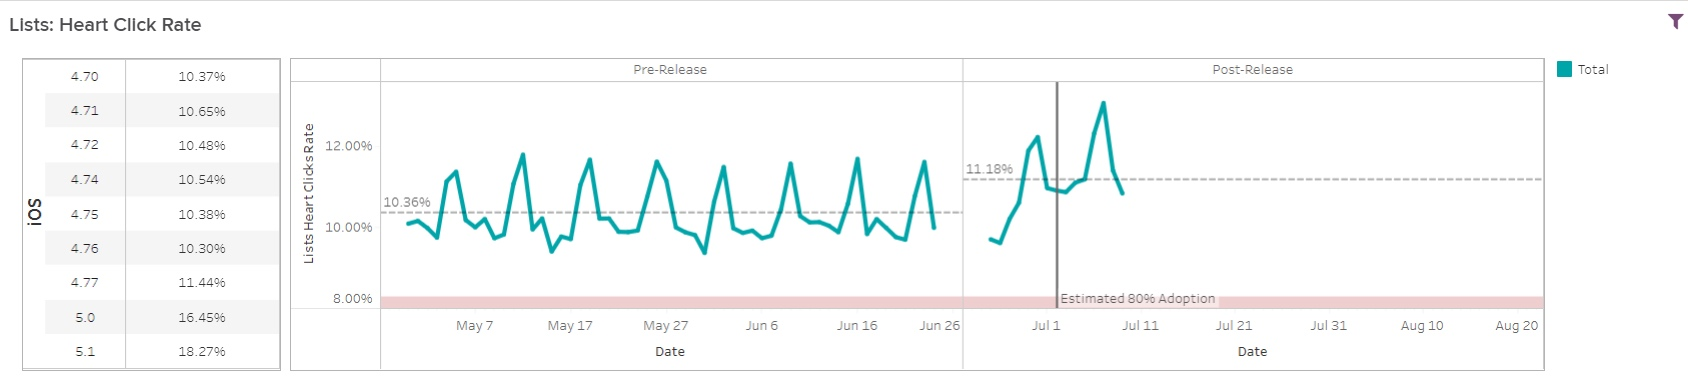 Our heart click dashboard displays, in only one week, the engagement has jumped up +0.86!